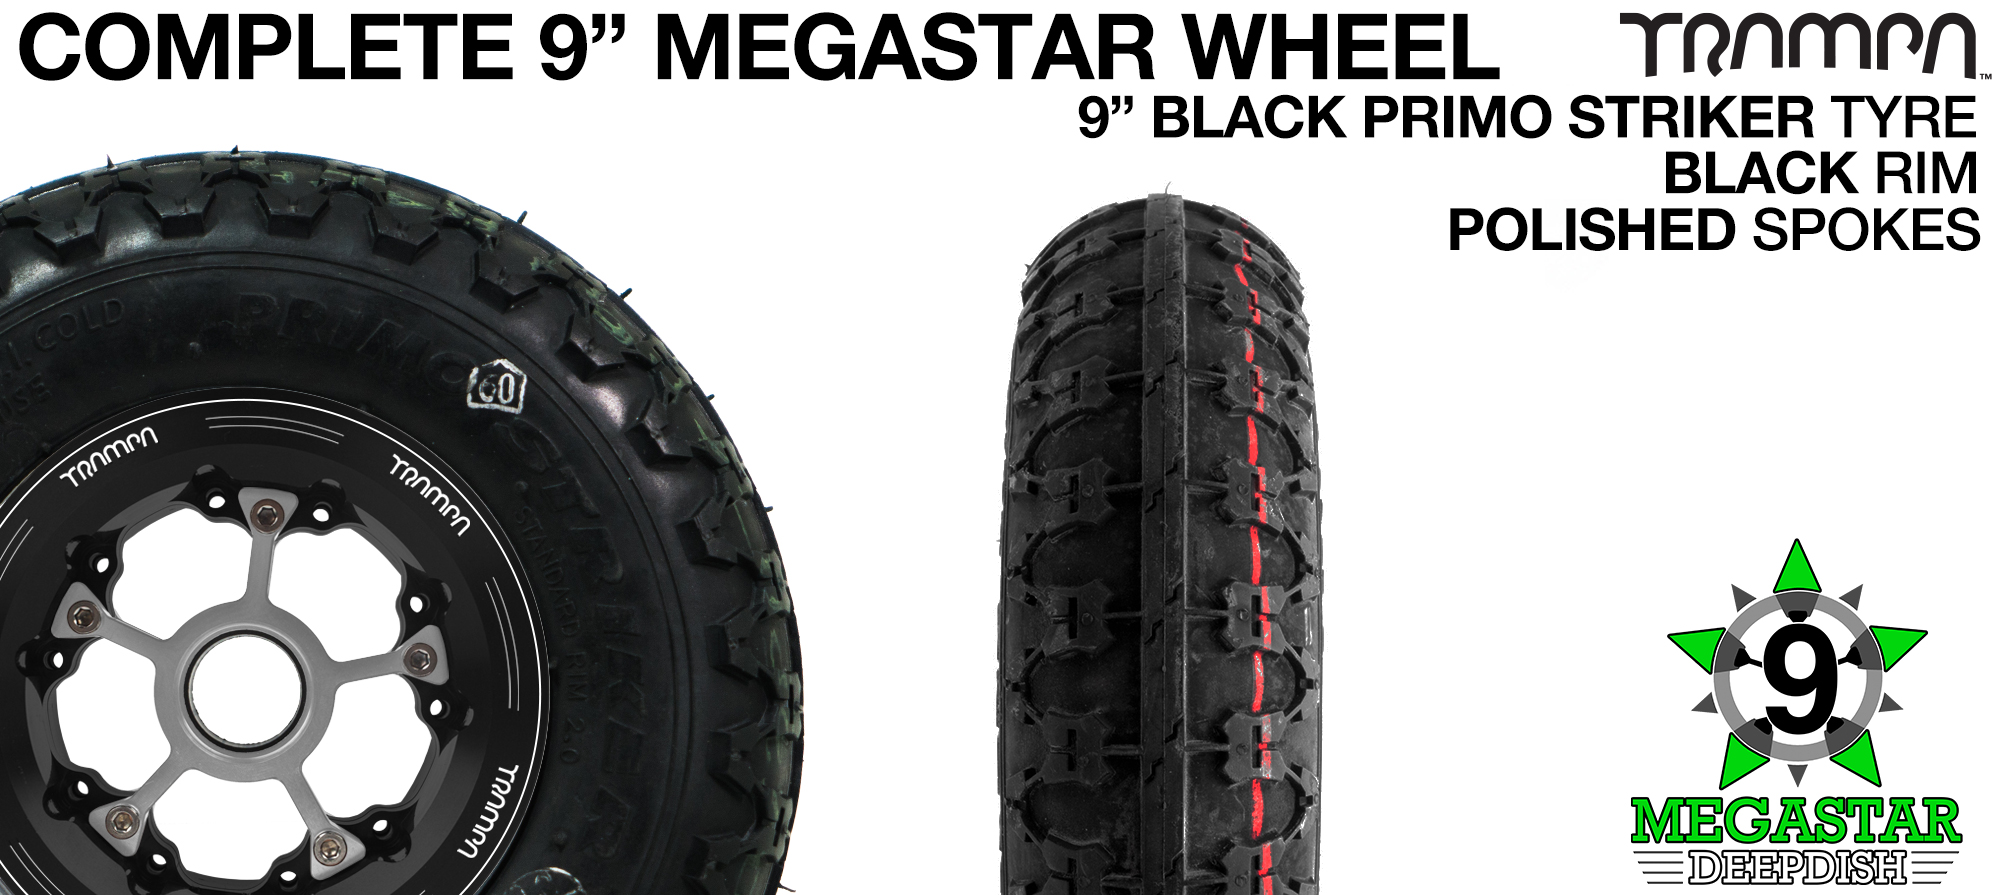 BLACK 9 inch Deep-Dish MEGASTARS Rim with POLISHED Spokes & 9 Inch PRIMO STRIKER Tyres